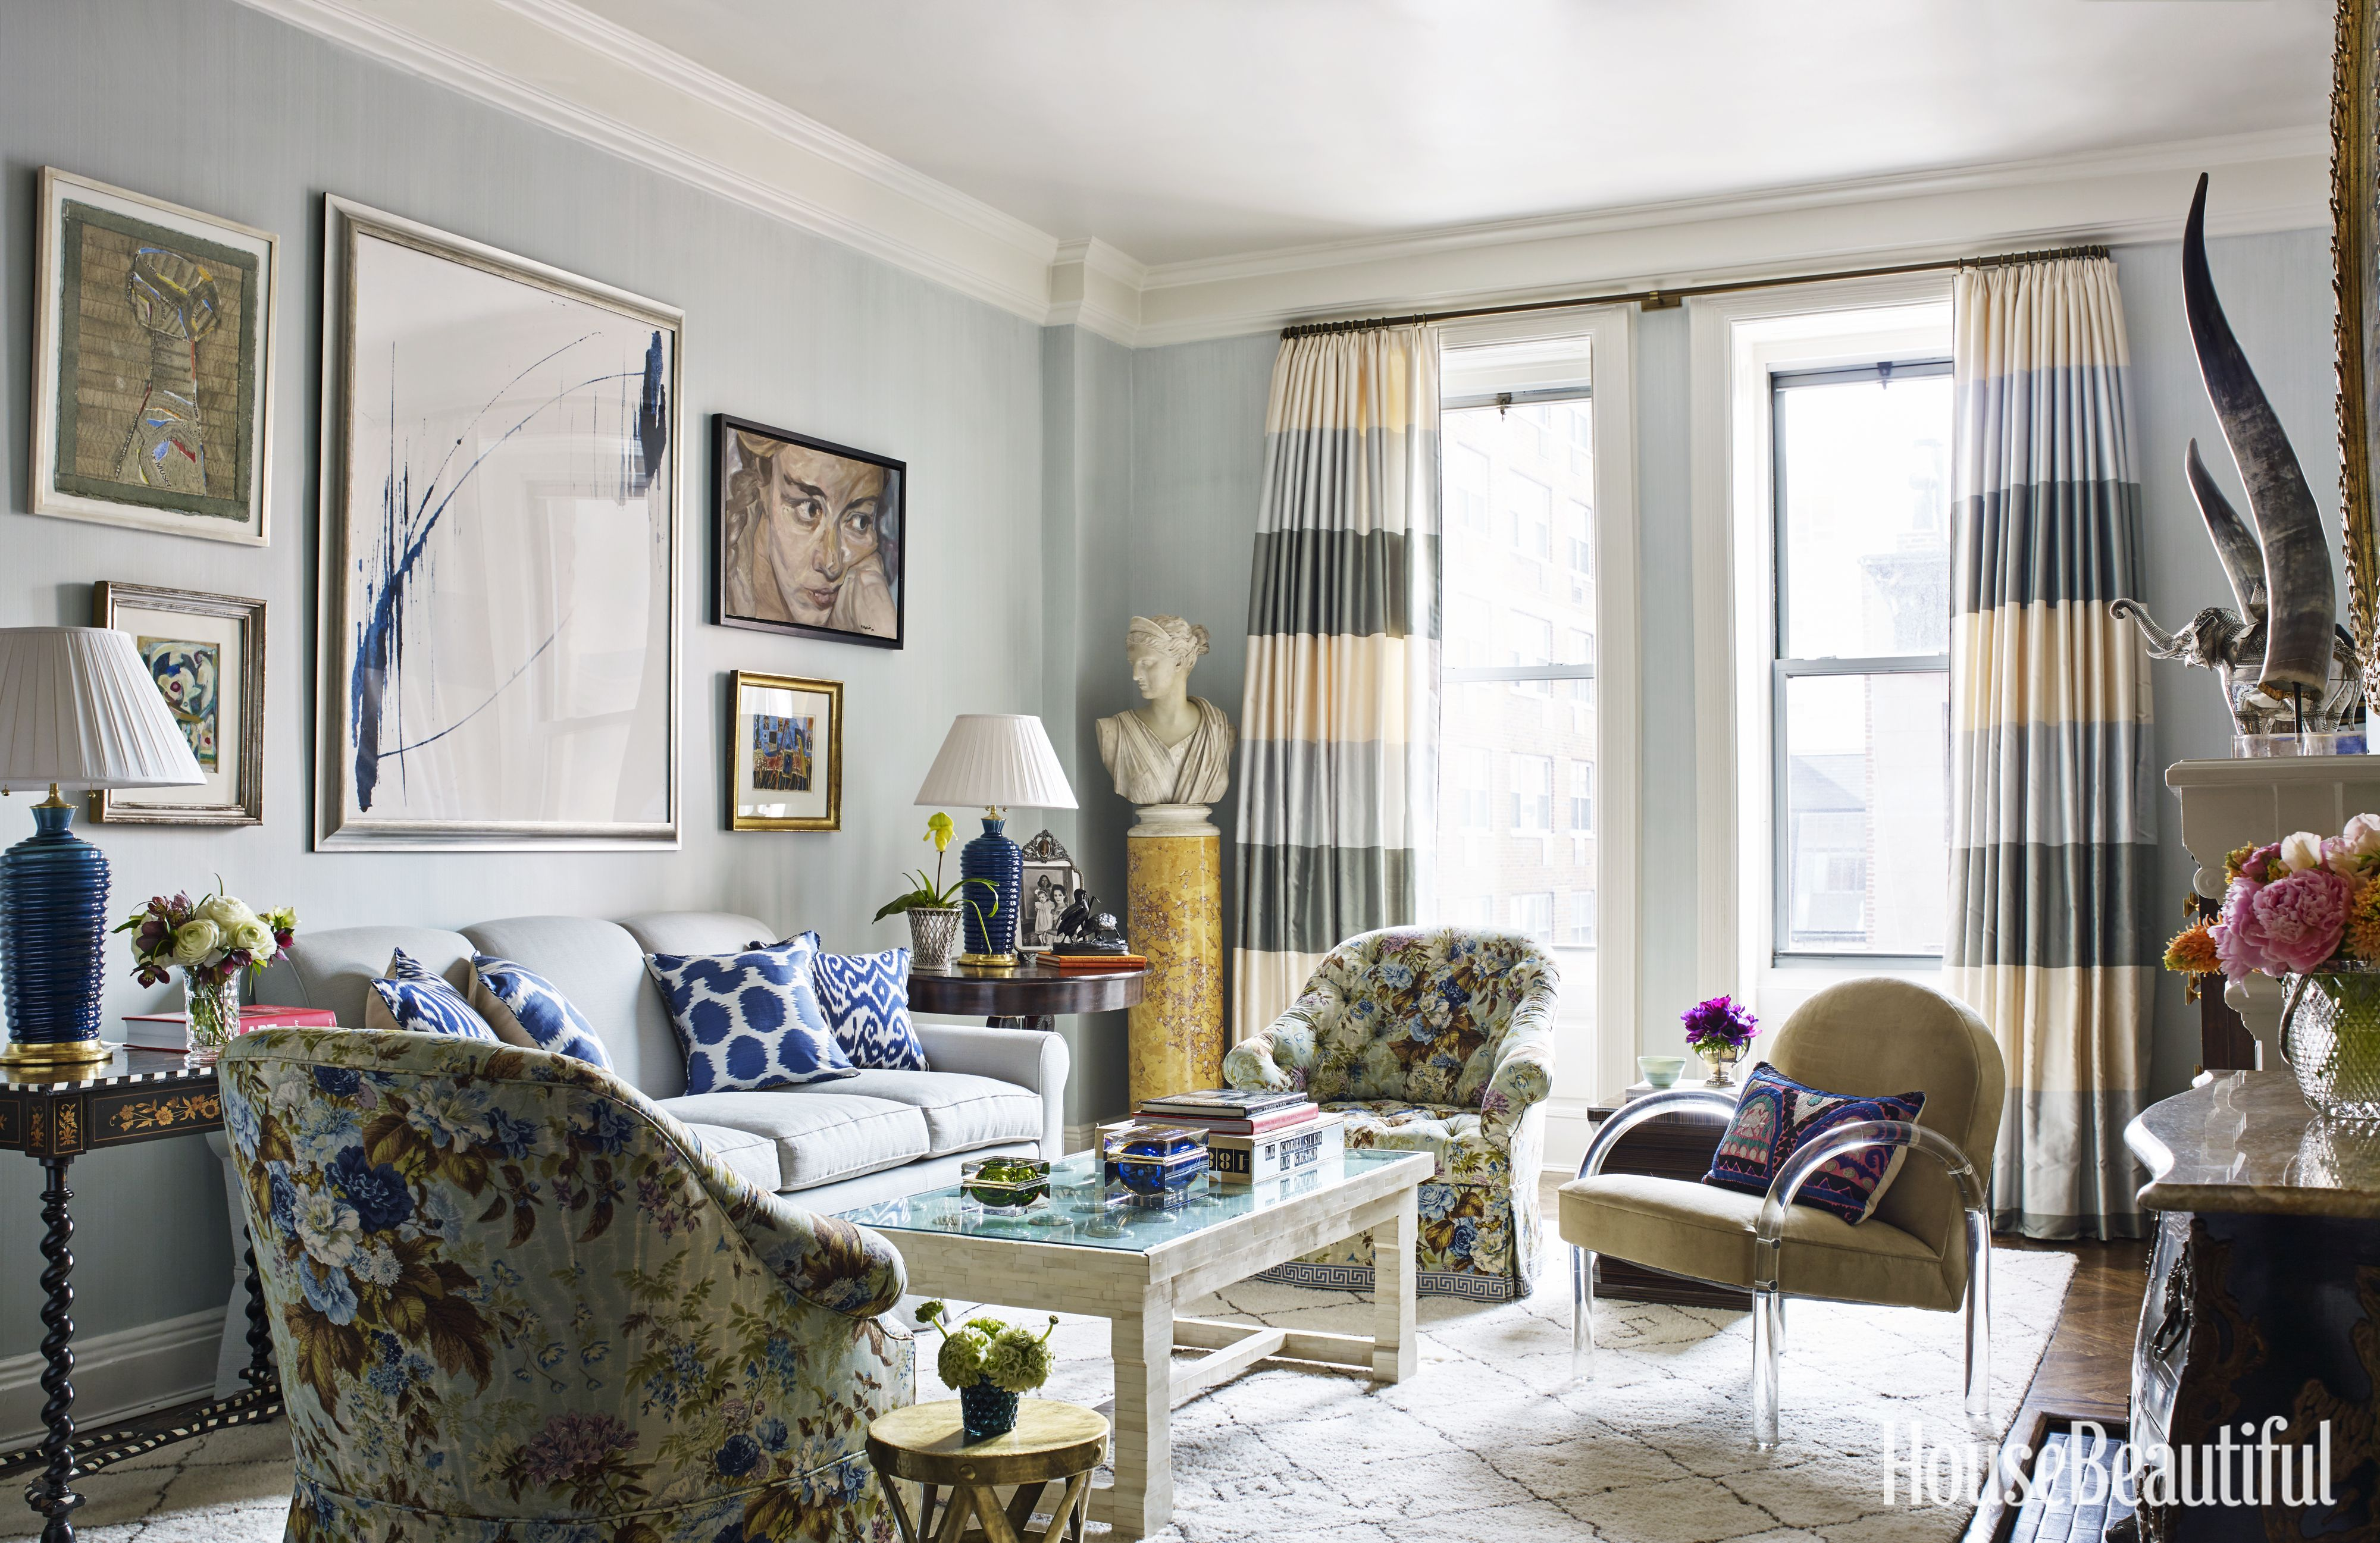 How Bunny Williams Creates Homes That Are As Functional And Comfortable As They Are Beautiful